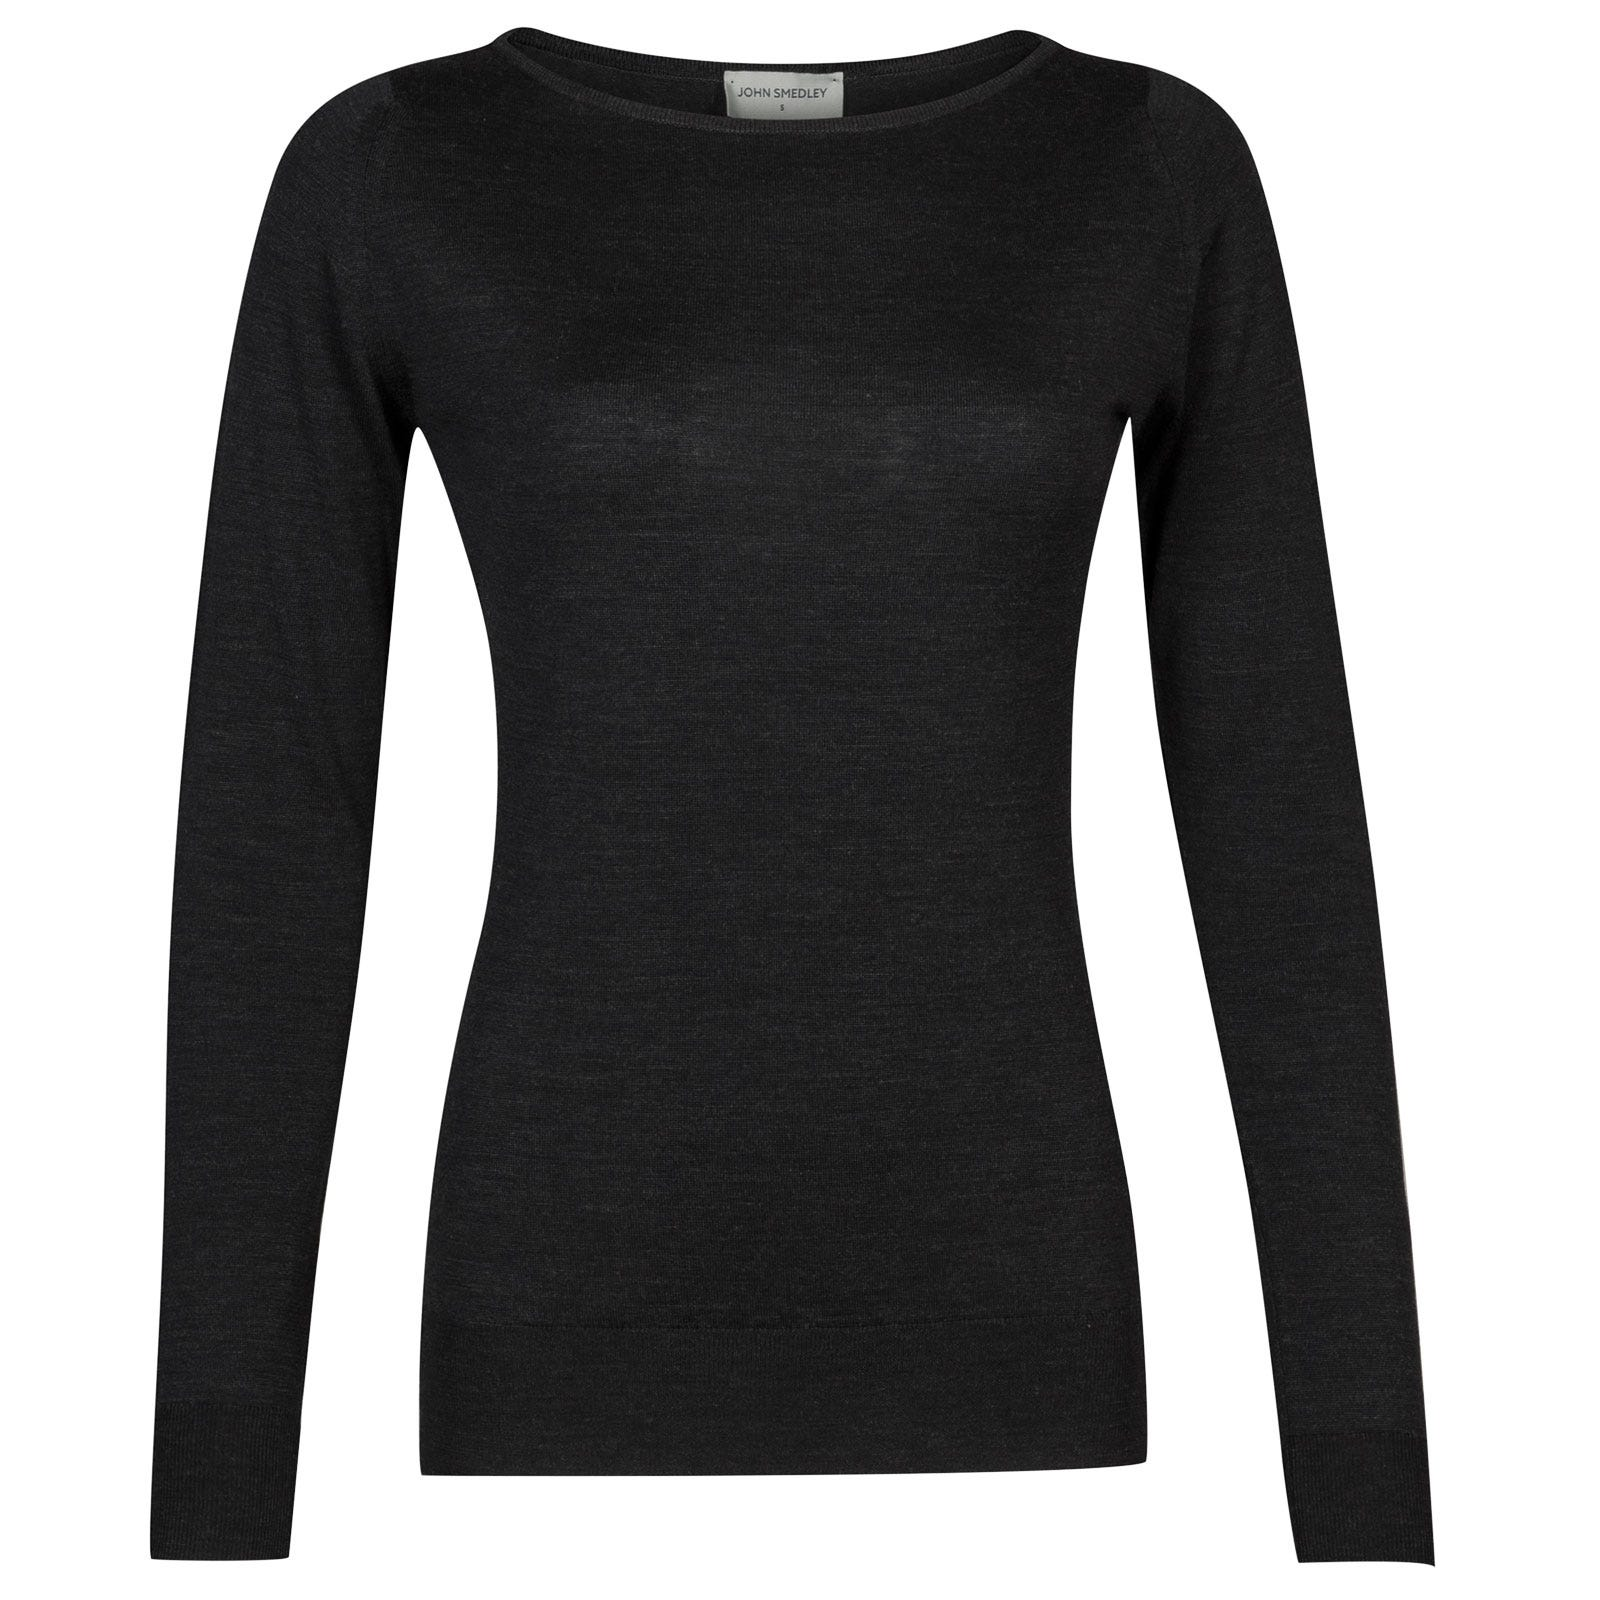 John Smedley susan Merino Wool Sweater in Hepburn Smoke-L